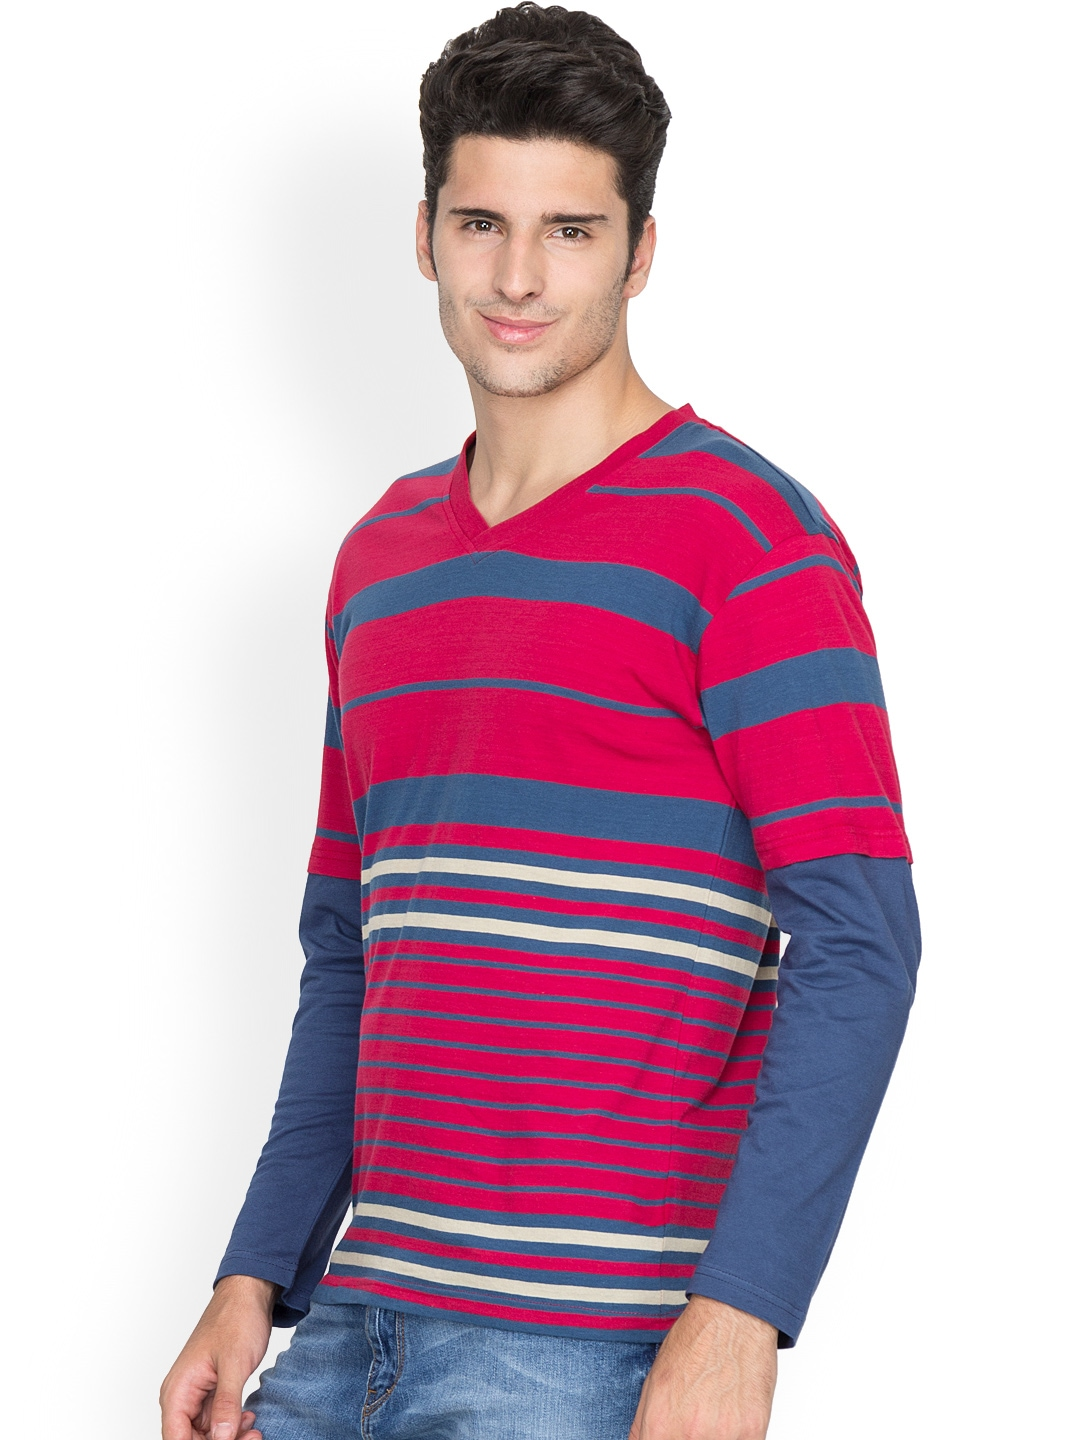 Myntra hypernation red blue striped t shirt 881919 buy for Red blue striped shirt